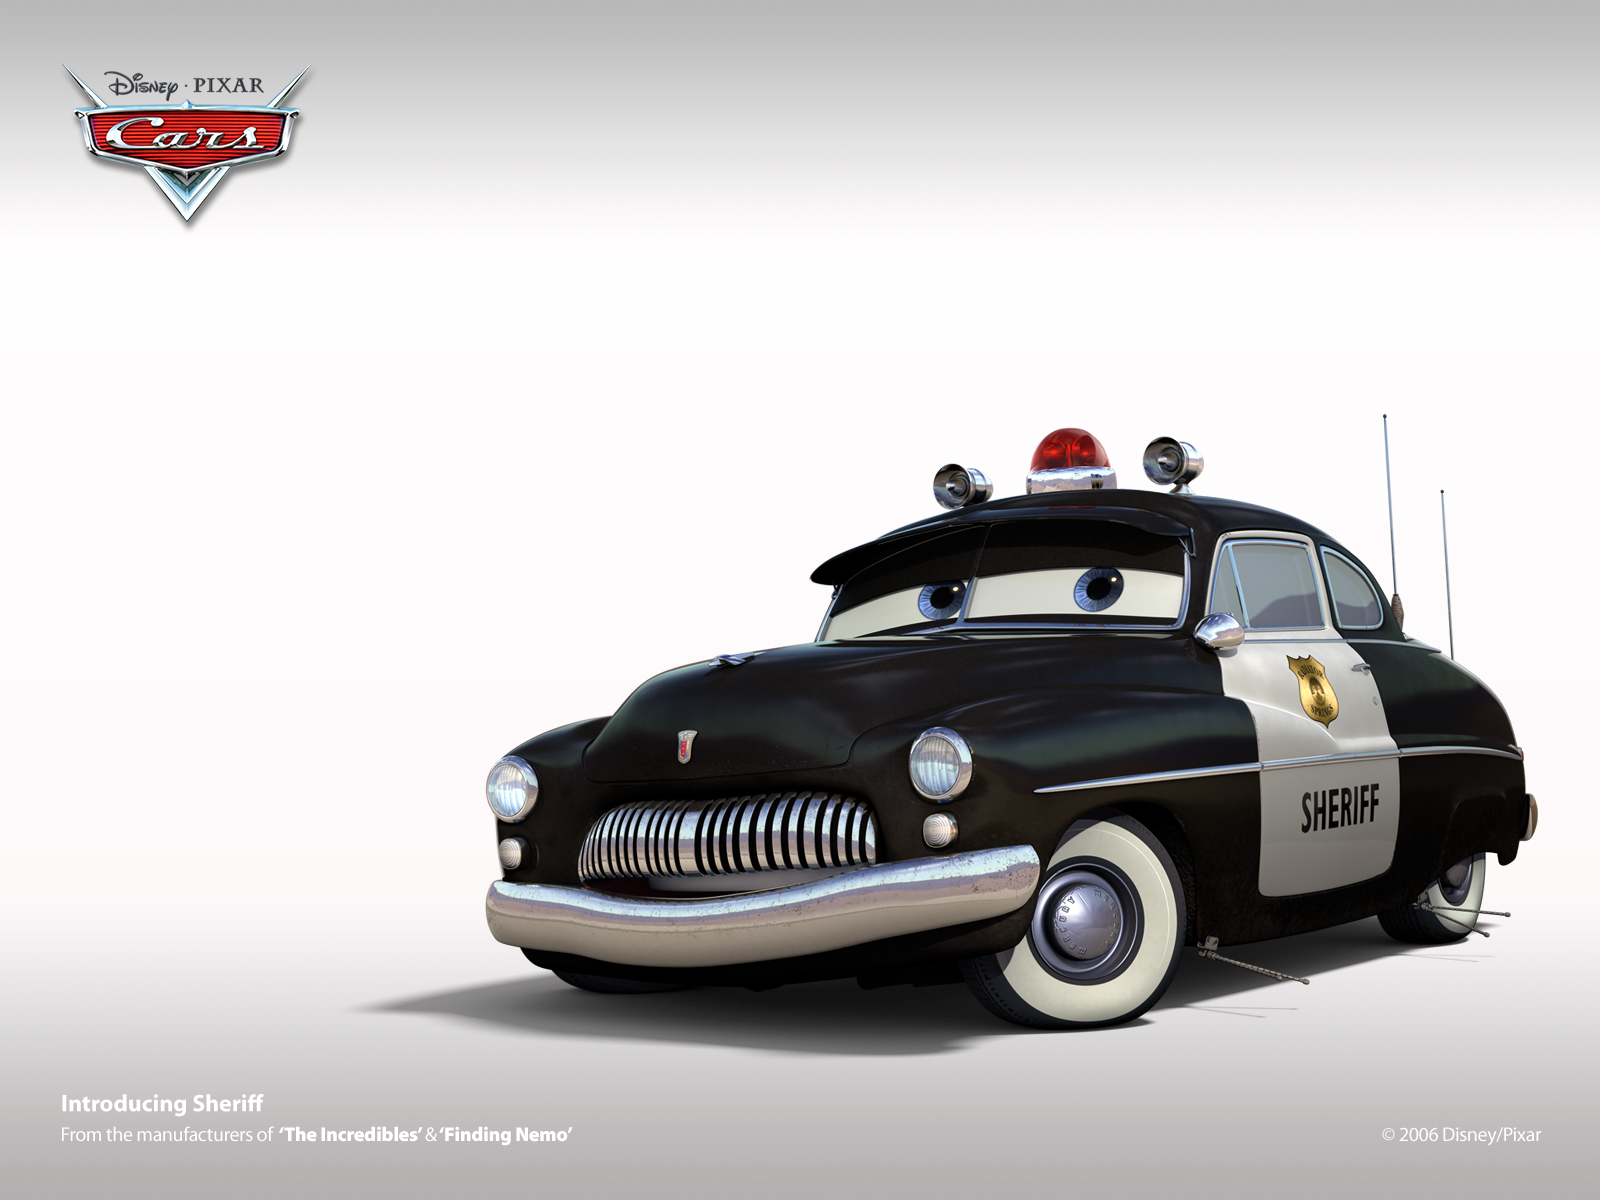 Cars photoblog july 2011 - Disney cars wallpaper ...